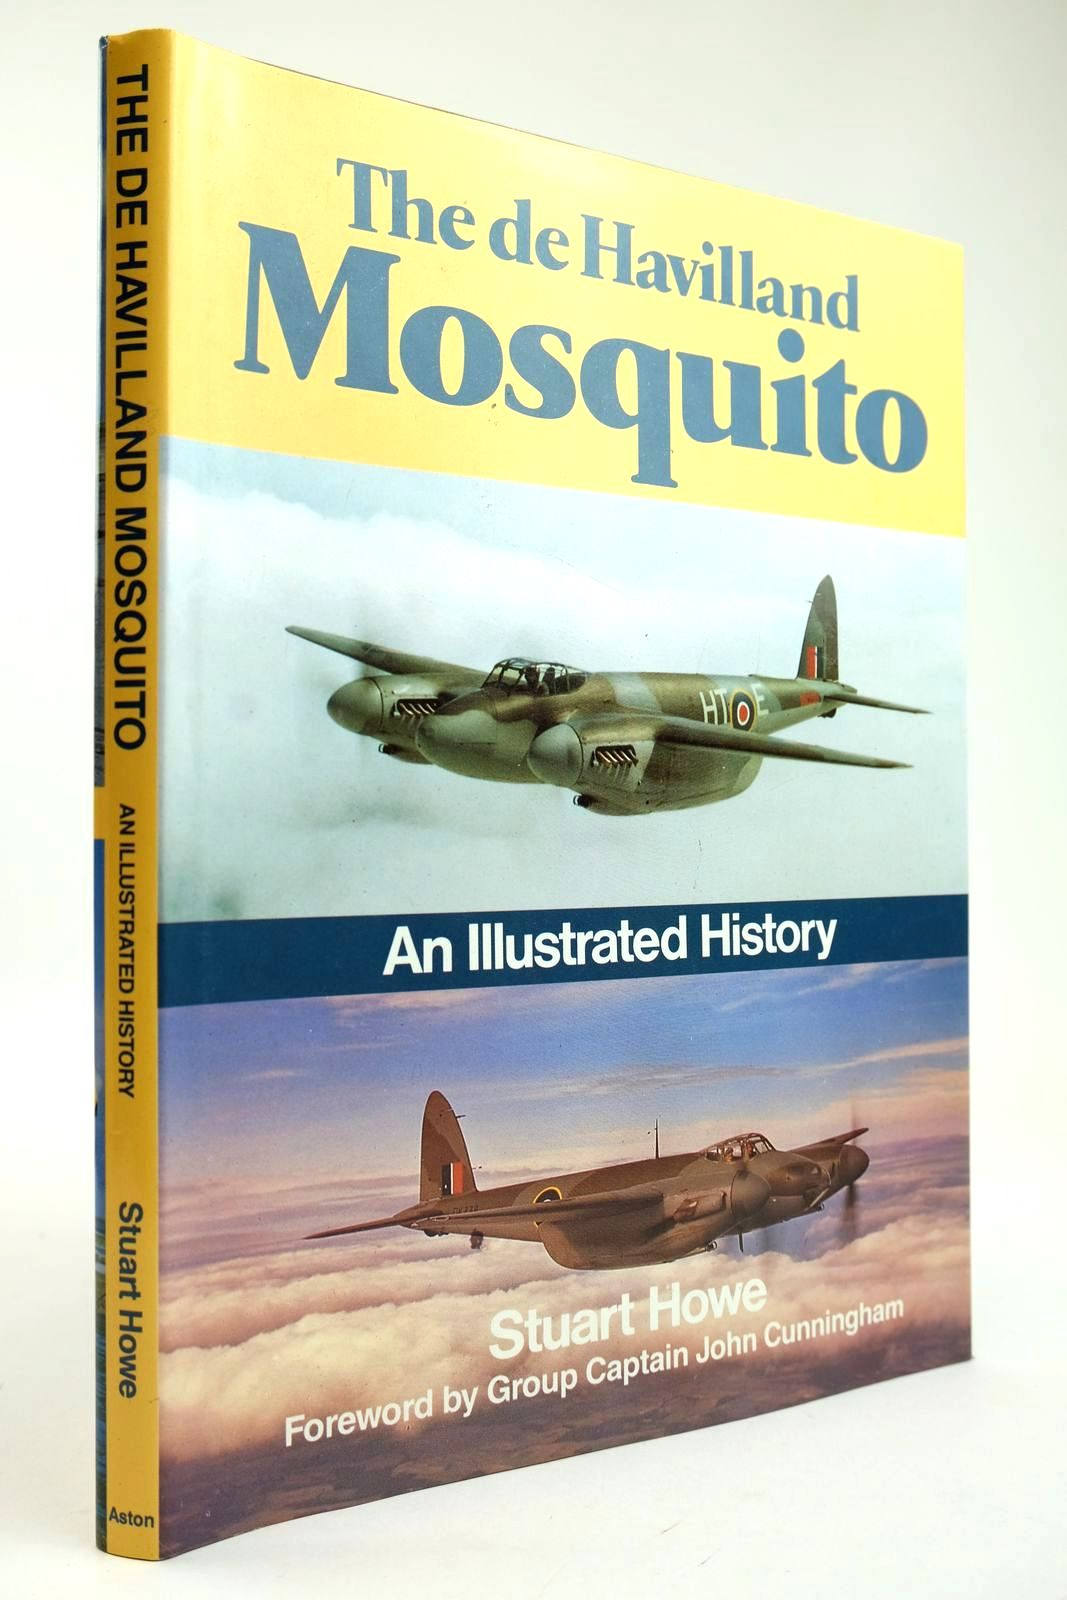 Photo of DE HAVILLAND MOSQUITO AN ILLUSTRATED HISTORY written by Howe, Stuart published by Aston Publications (STOCK CODE: 2132177)  for sale by Stella & Rose's Books